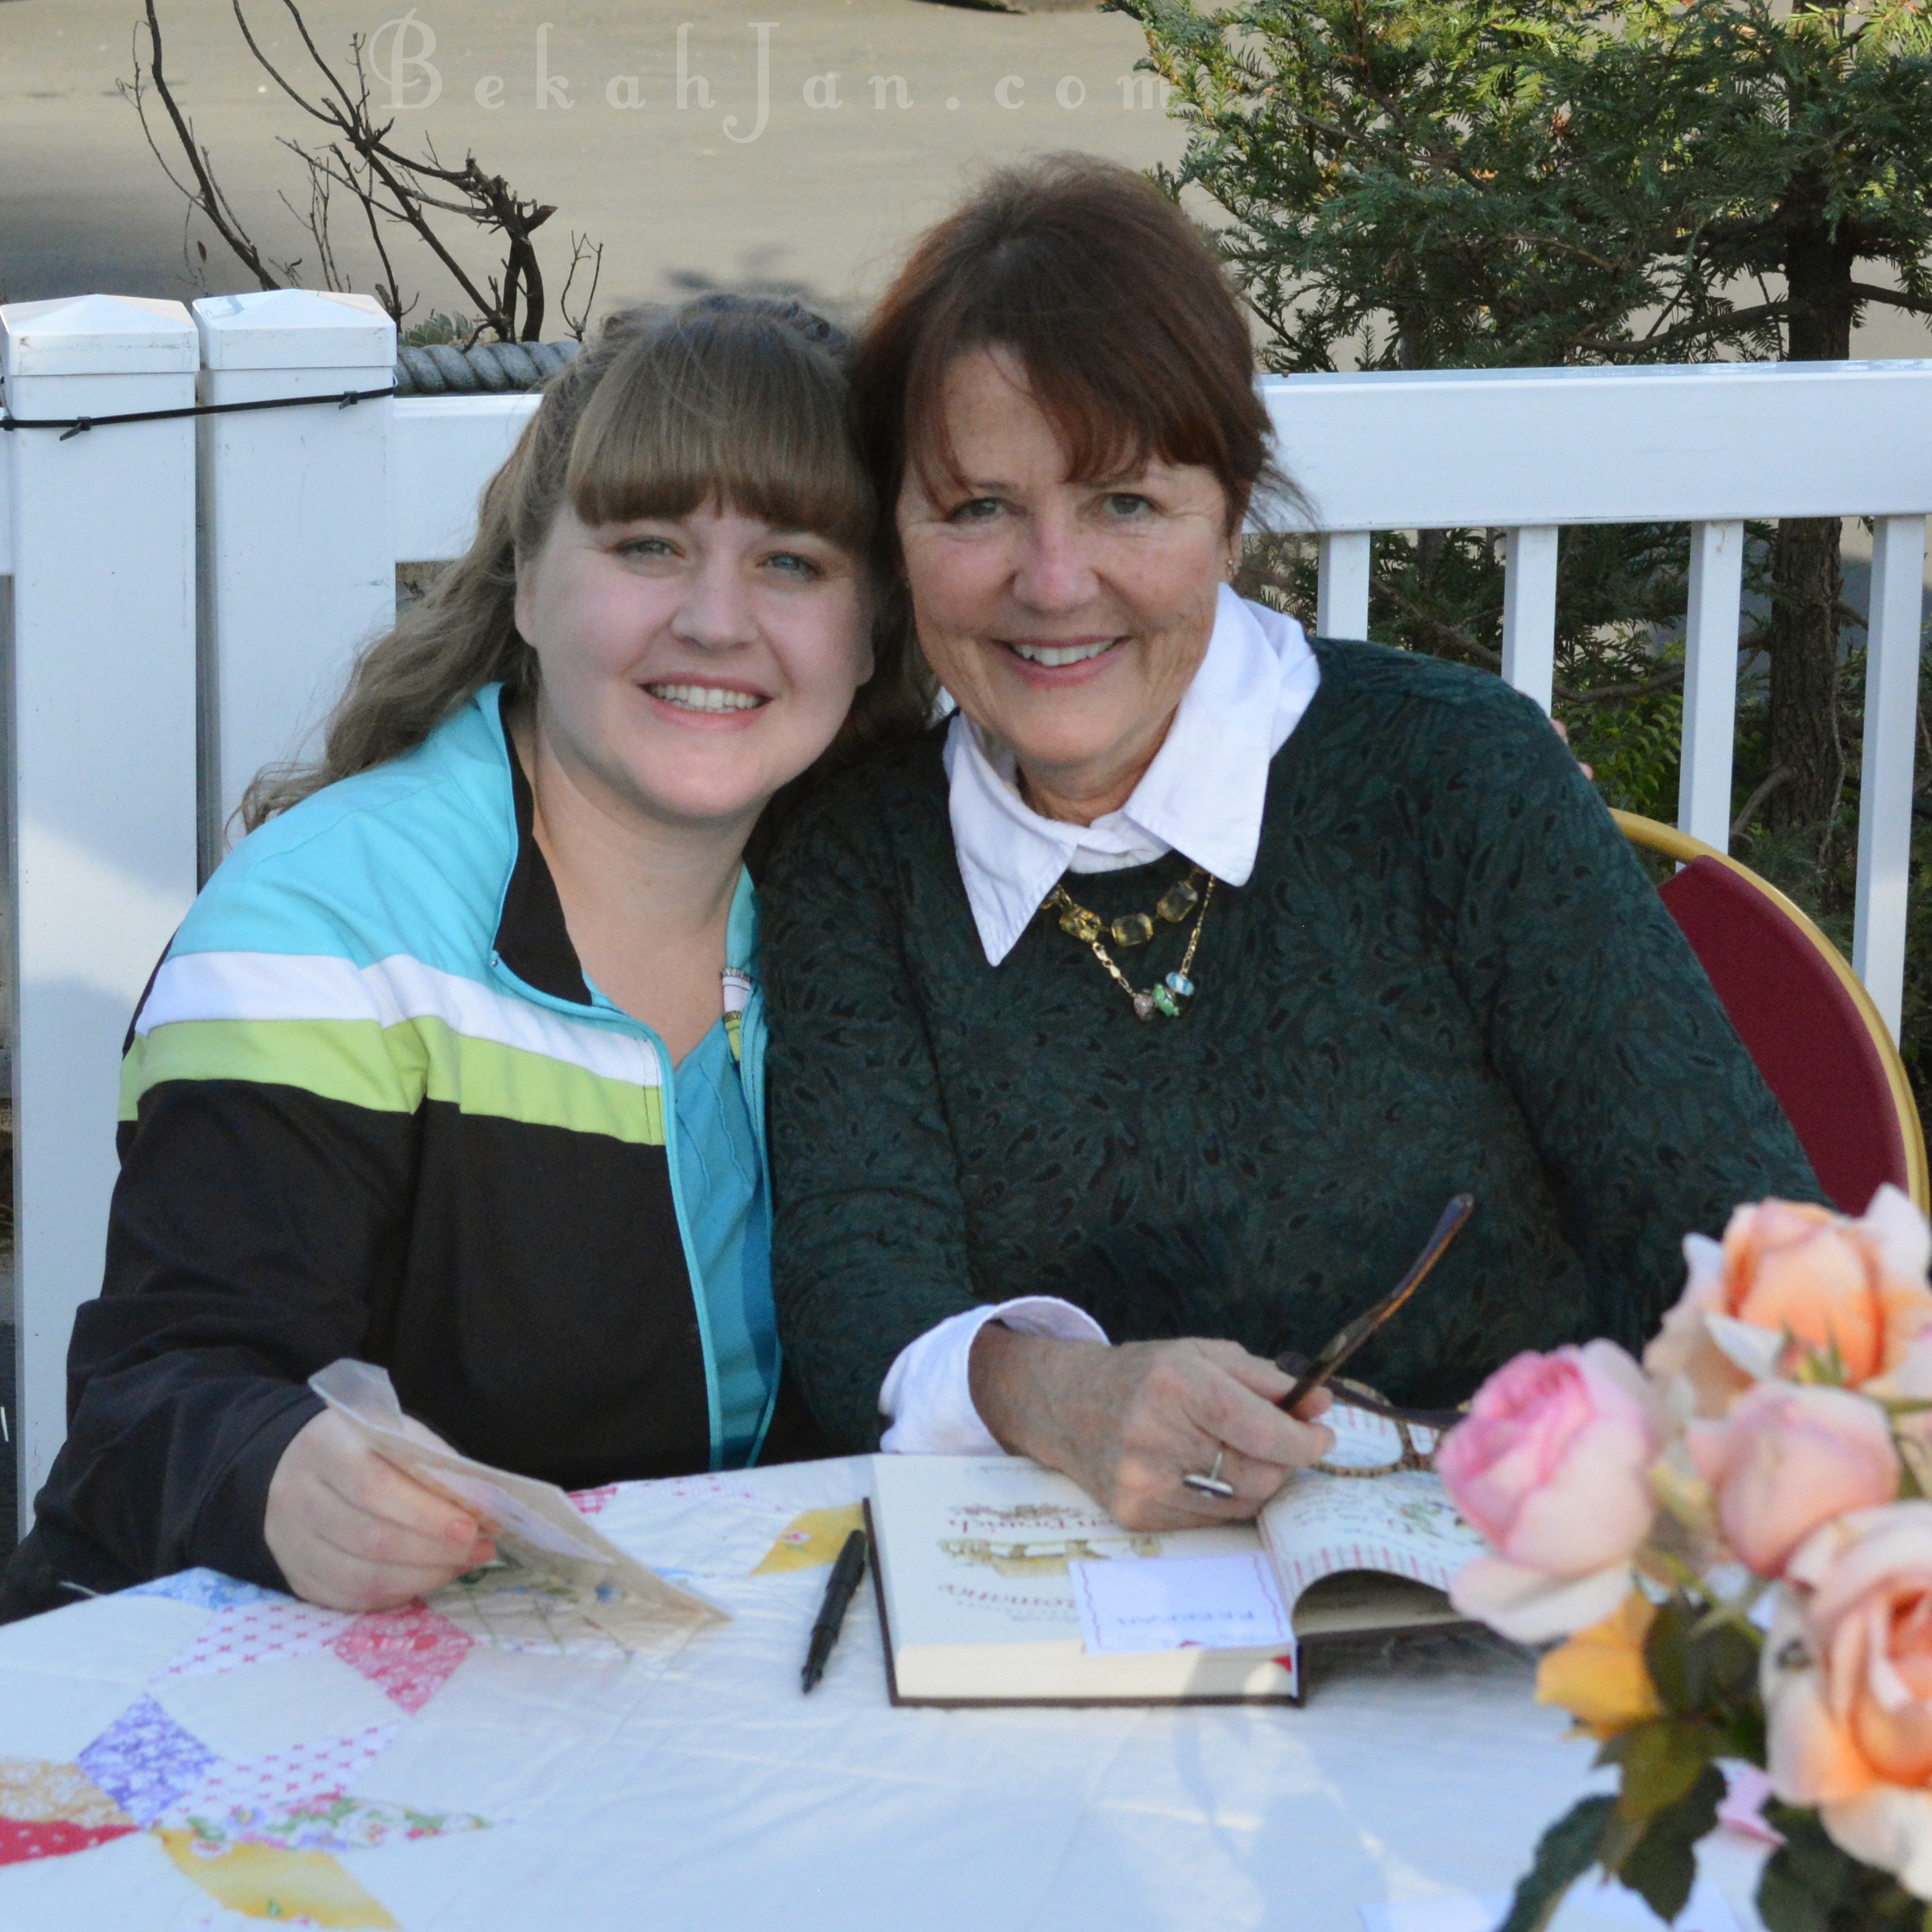 Susan Branch and I W.jpg